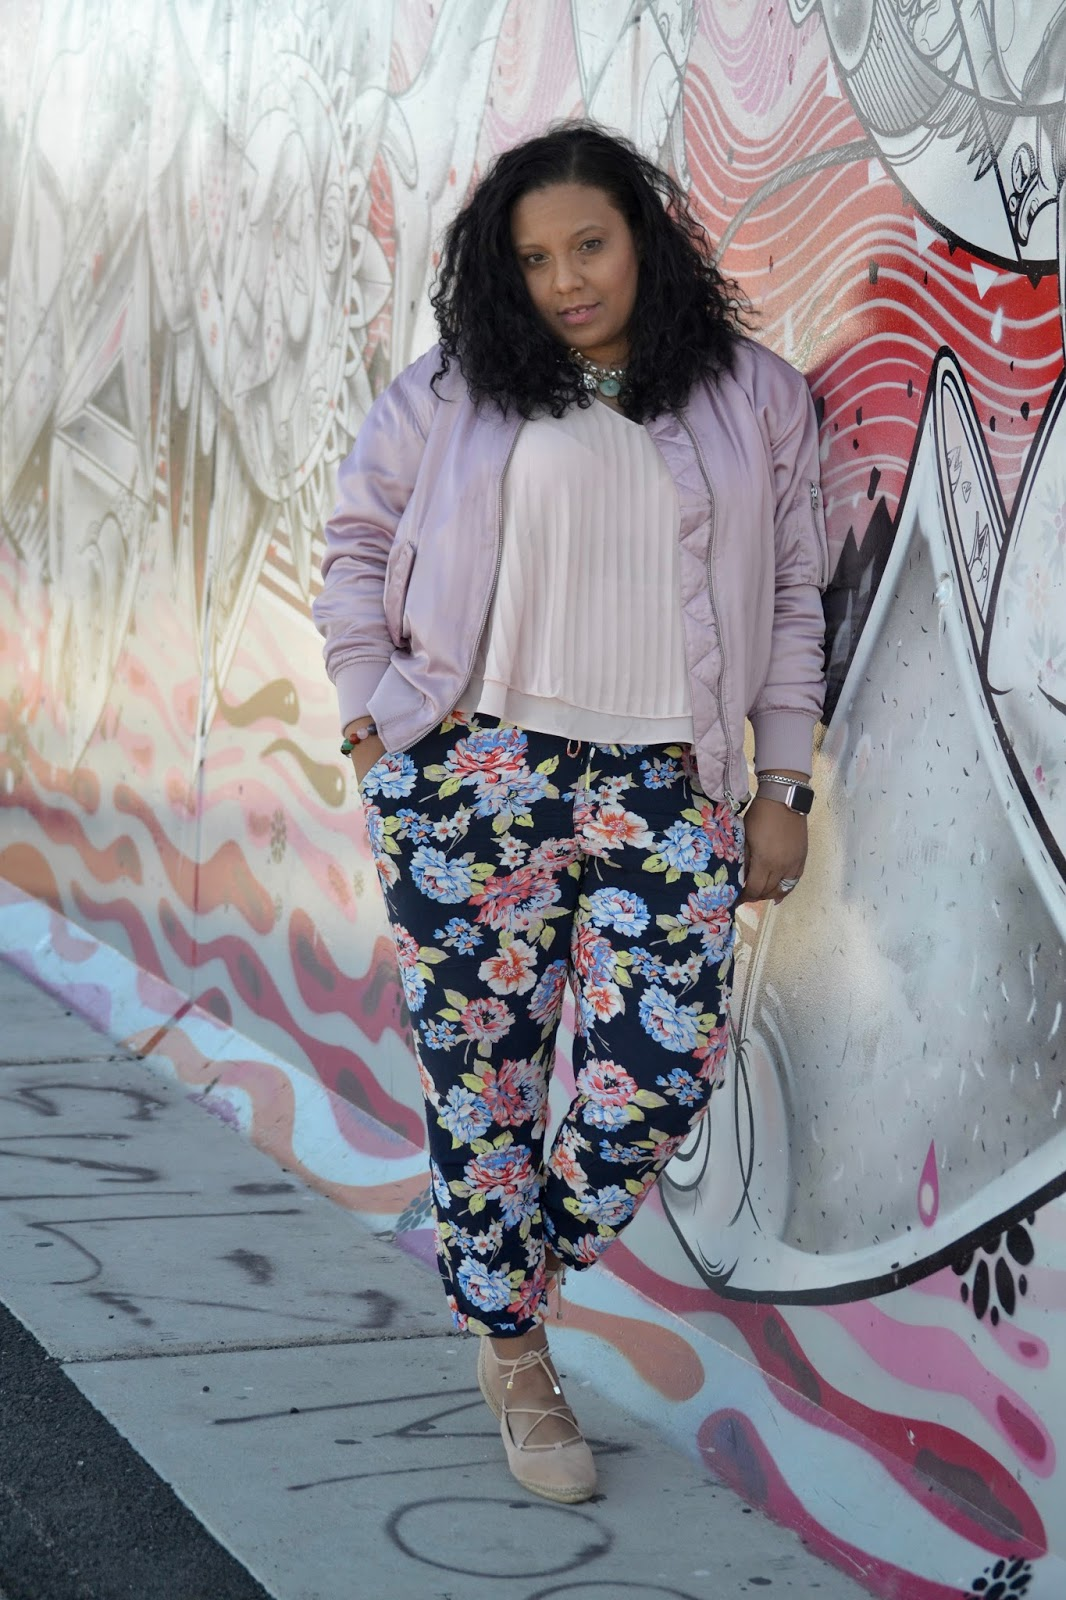 Pink and floral outfit